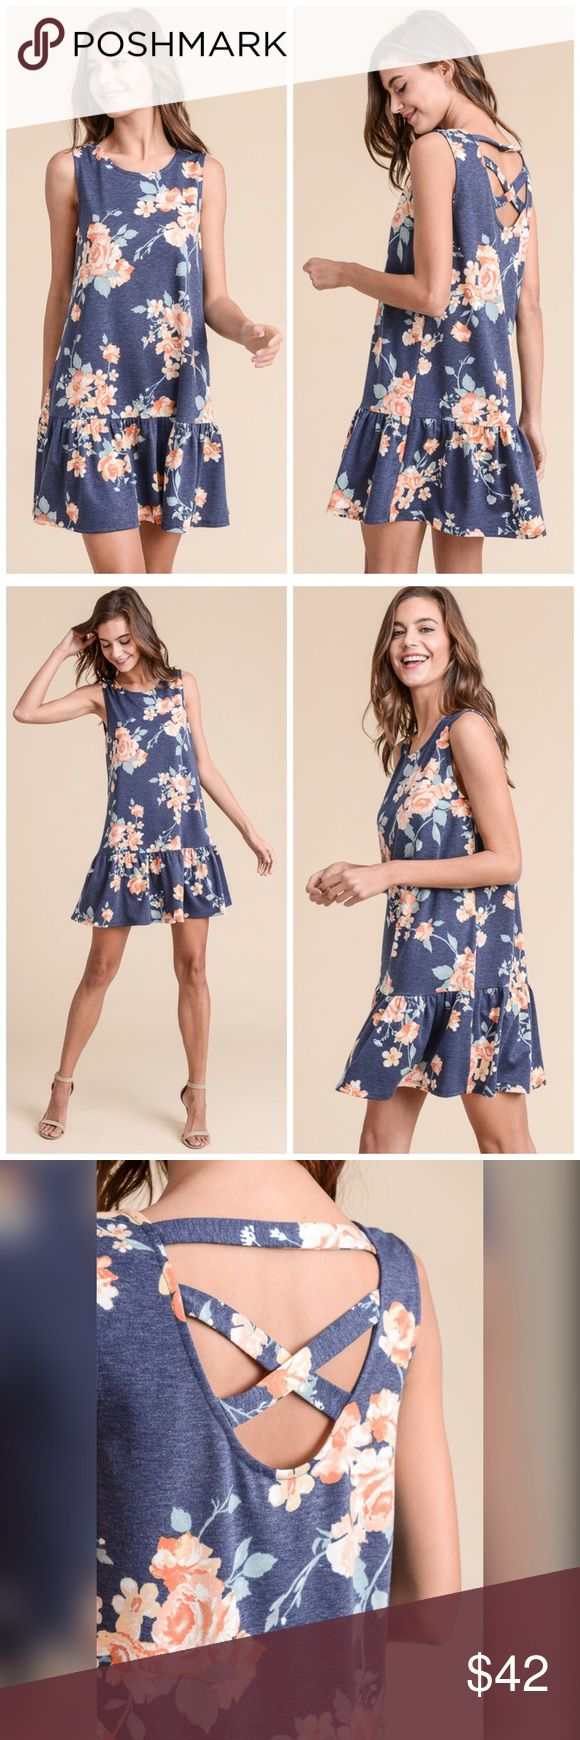 PREORDER Crisscross Ruffle Dress in French Terry💕 CRISSCROSS BACK FLORAL DRESS WITH RUFFLED HEM MADE IN USA 95% POLYESTER, 5% SPANDEX Dresses